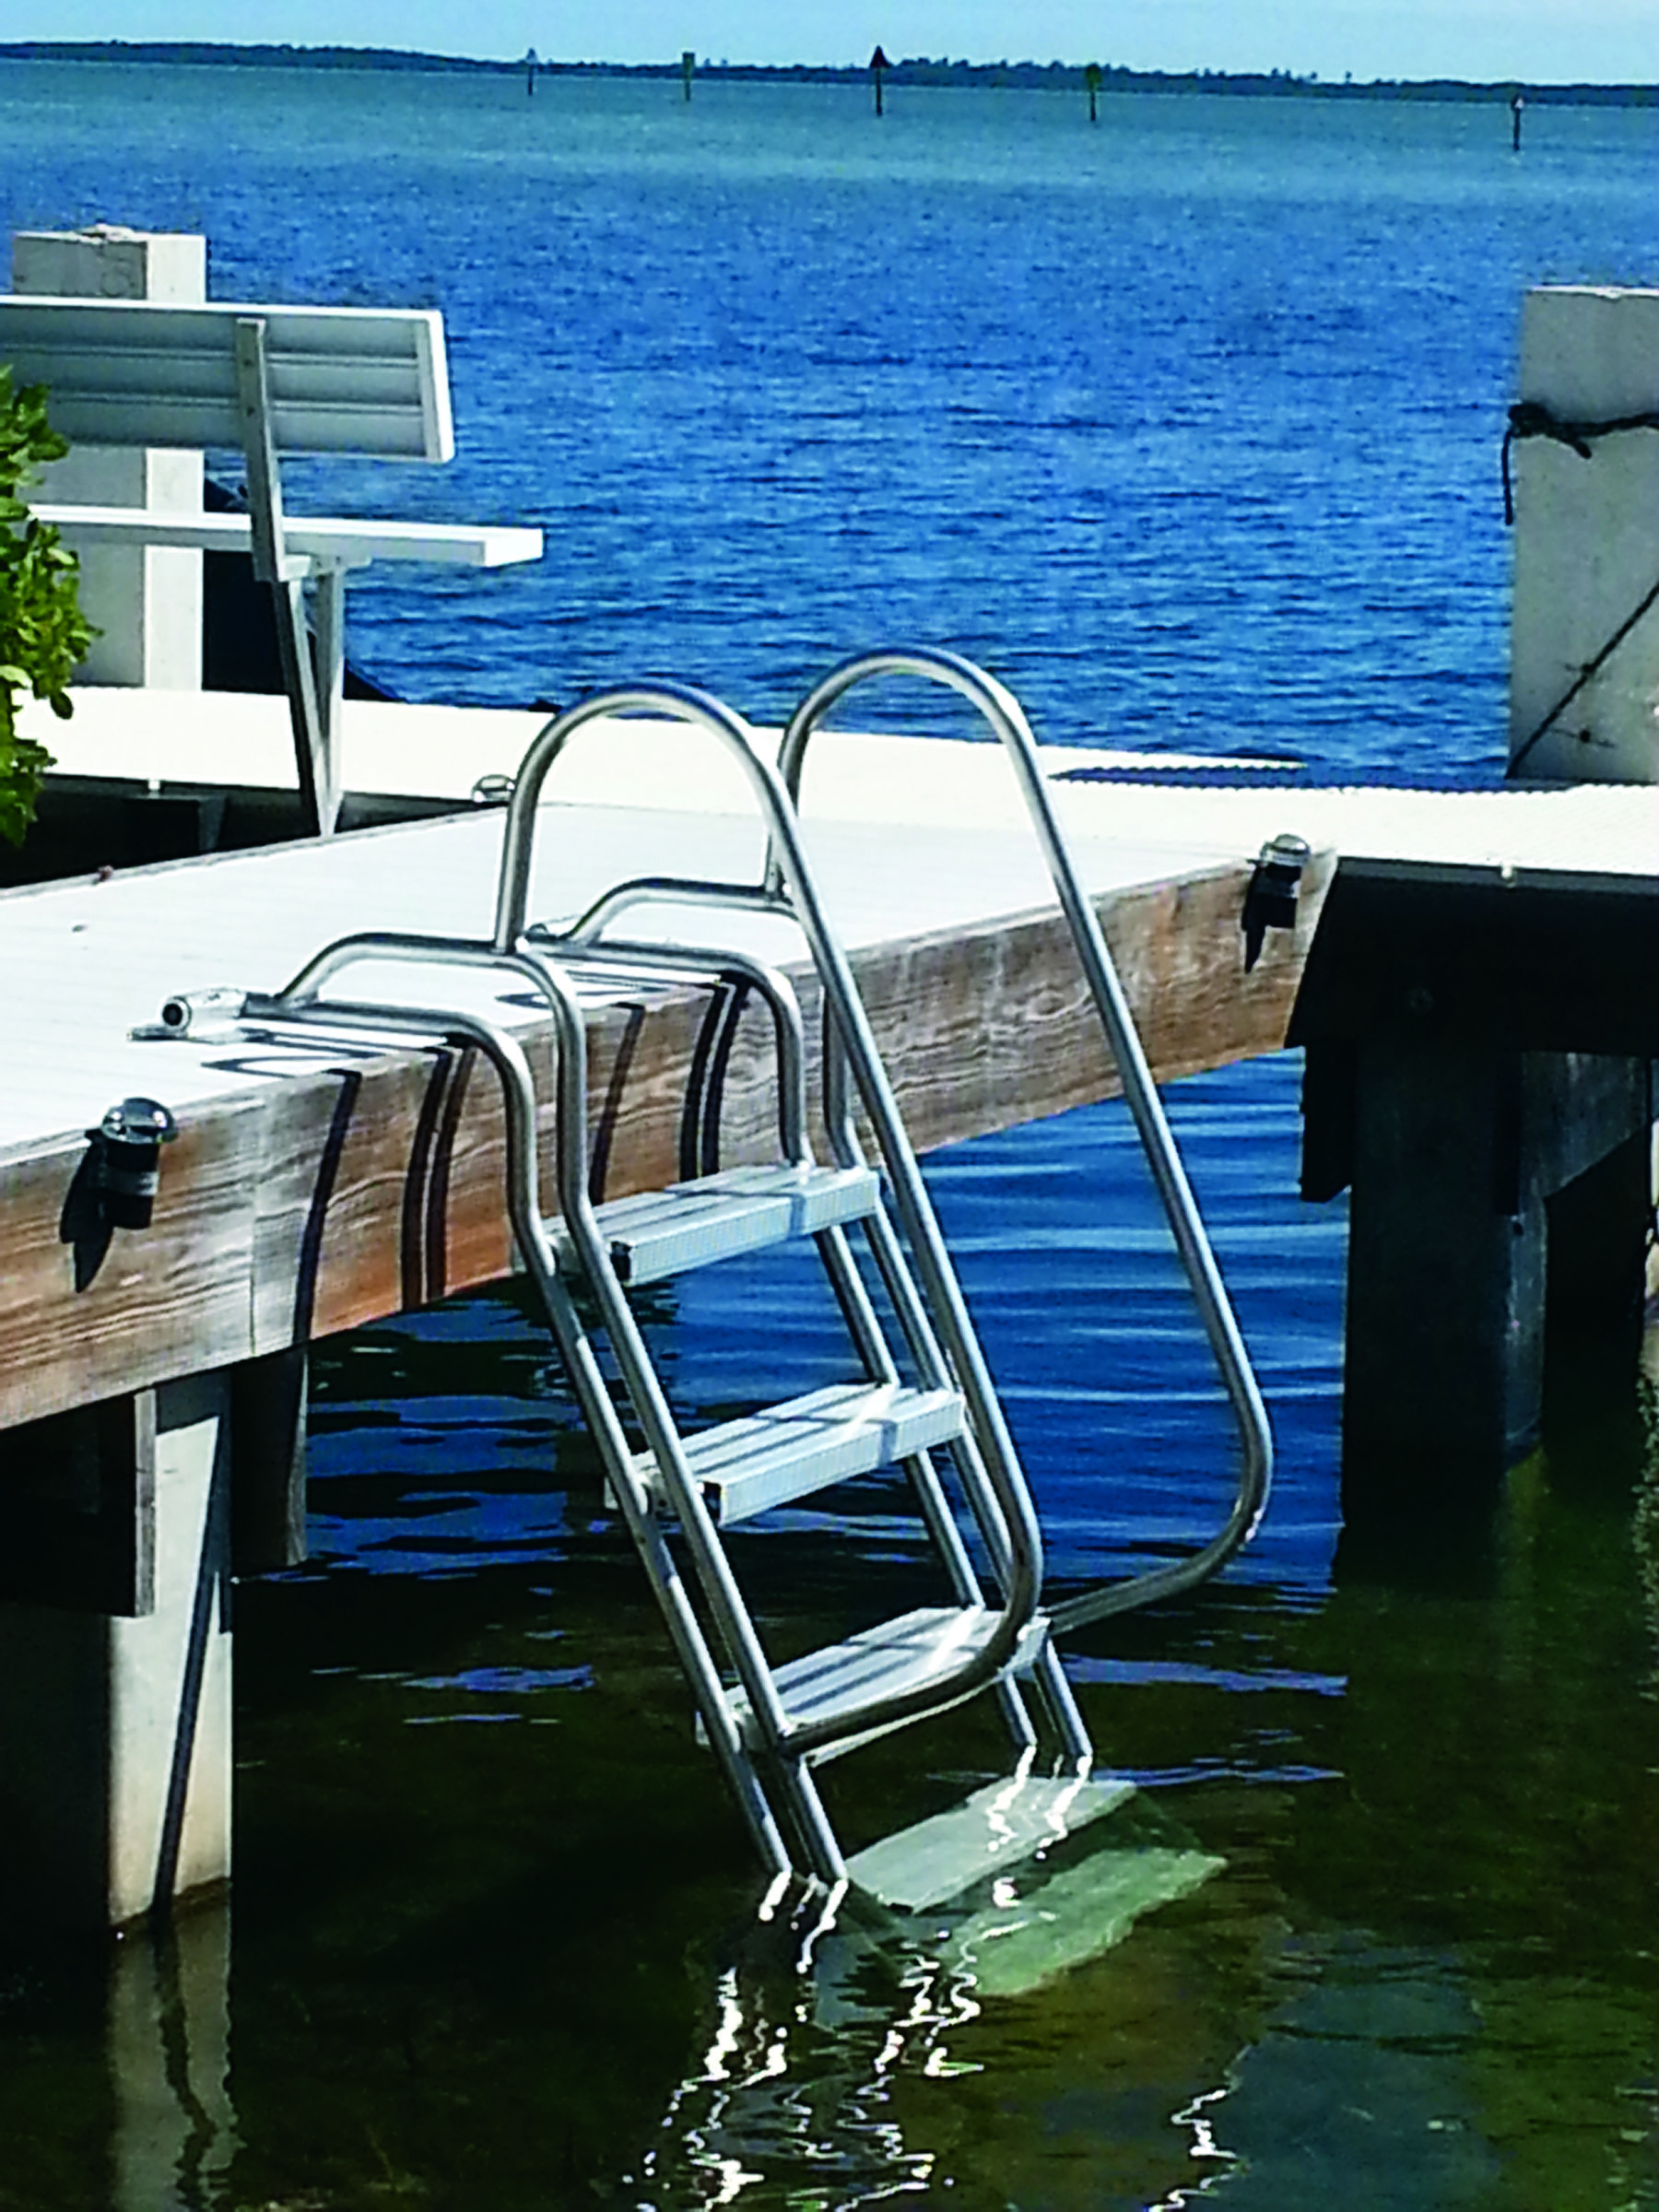 Wet Steps Ladders Make It Easier To Get Out Of The Water Pirs